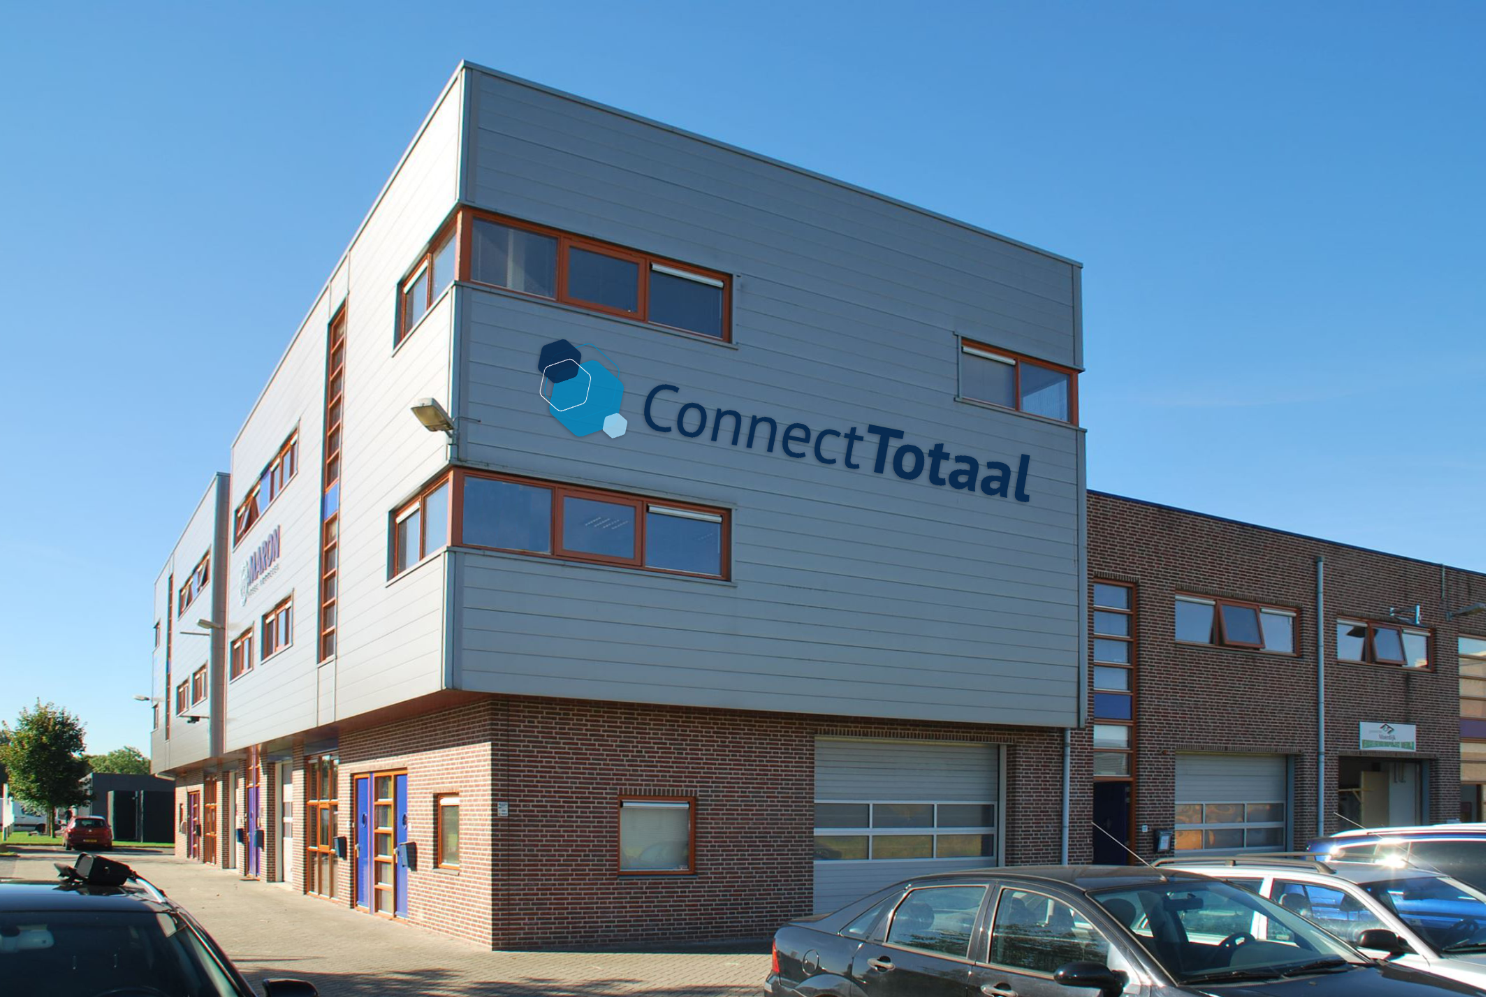 ConnectTotaal